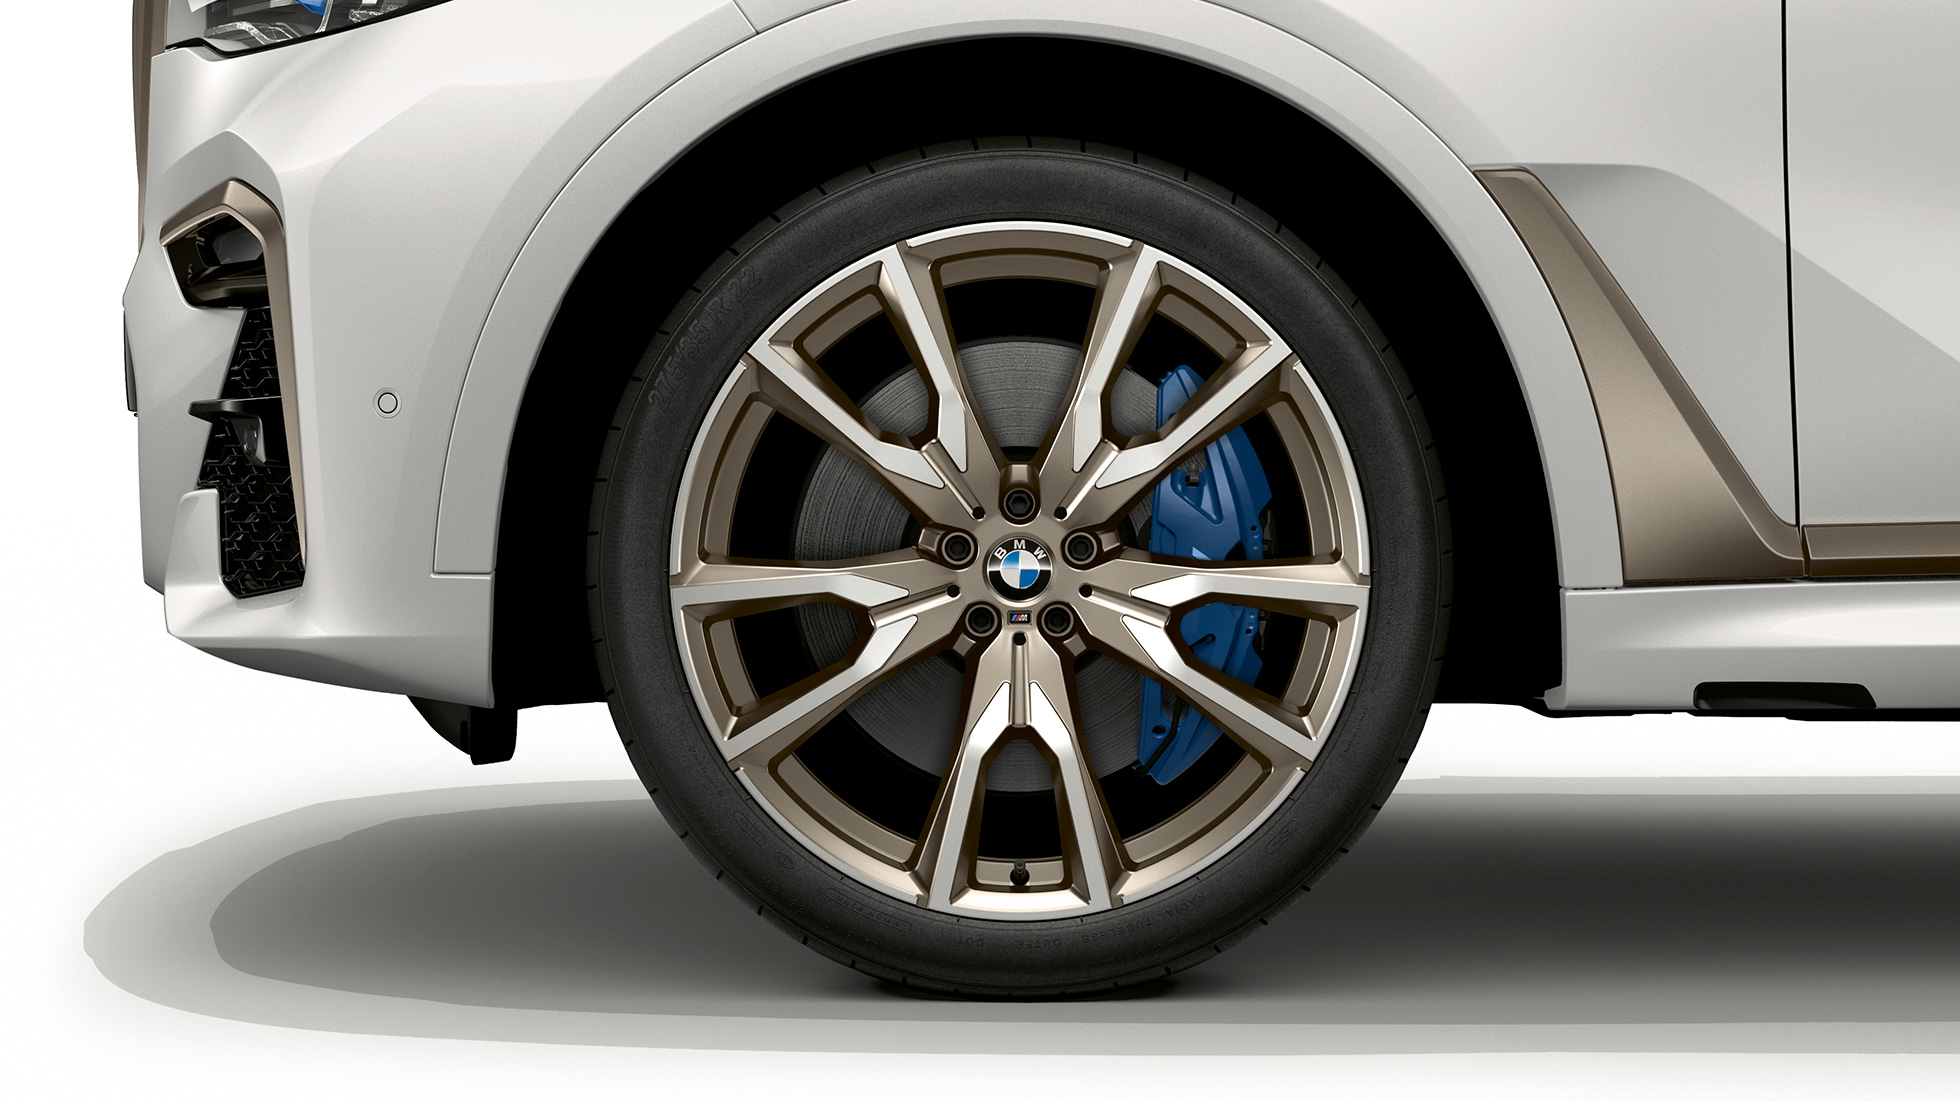 Close-up of the light alloy wheel of the BMW X7 with BMW X7 M50d features